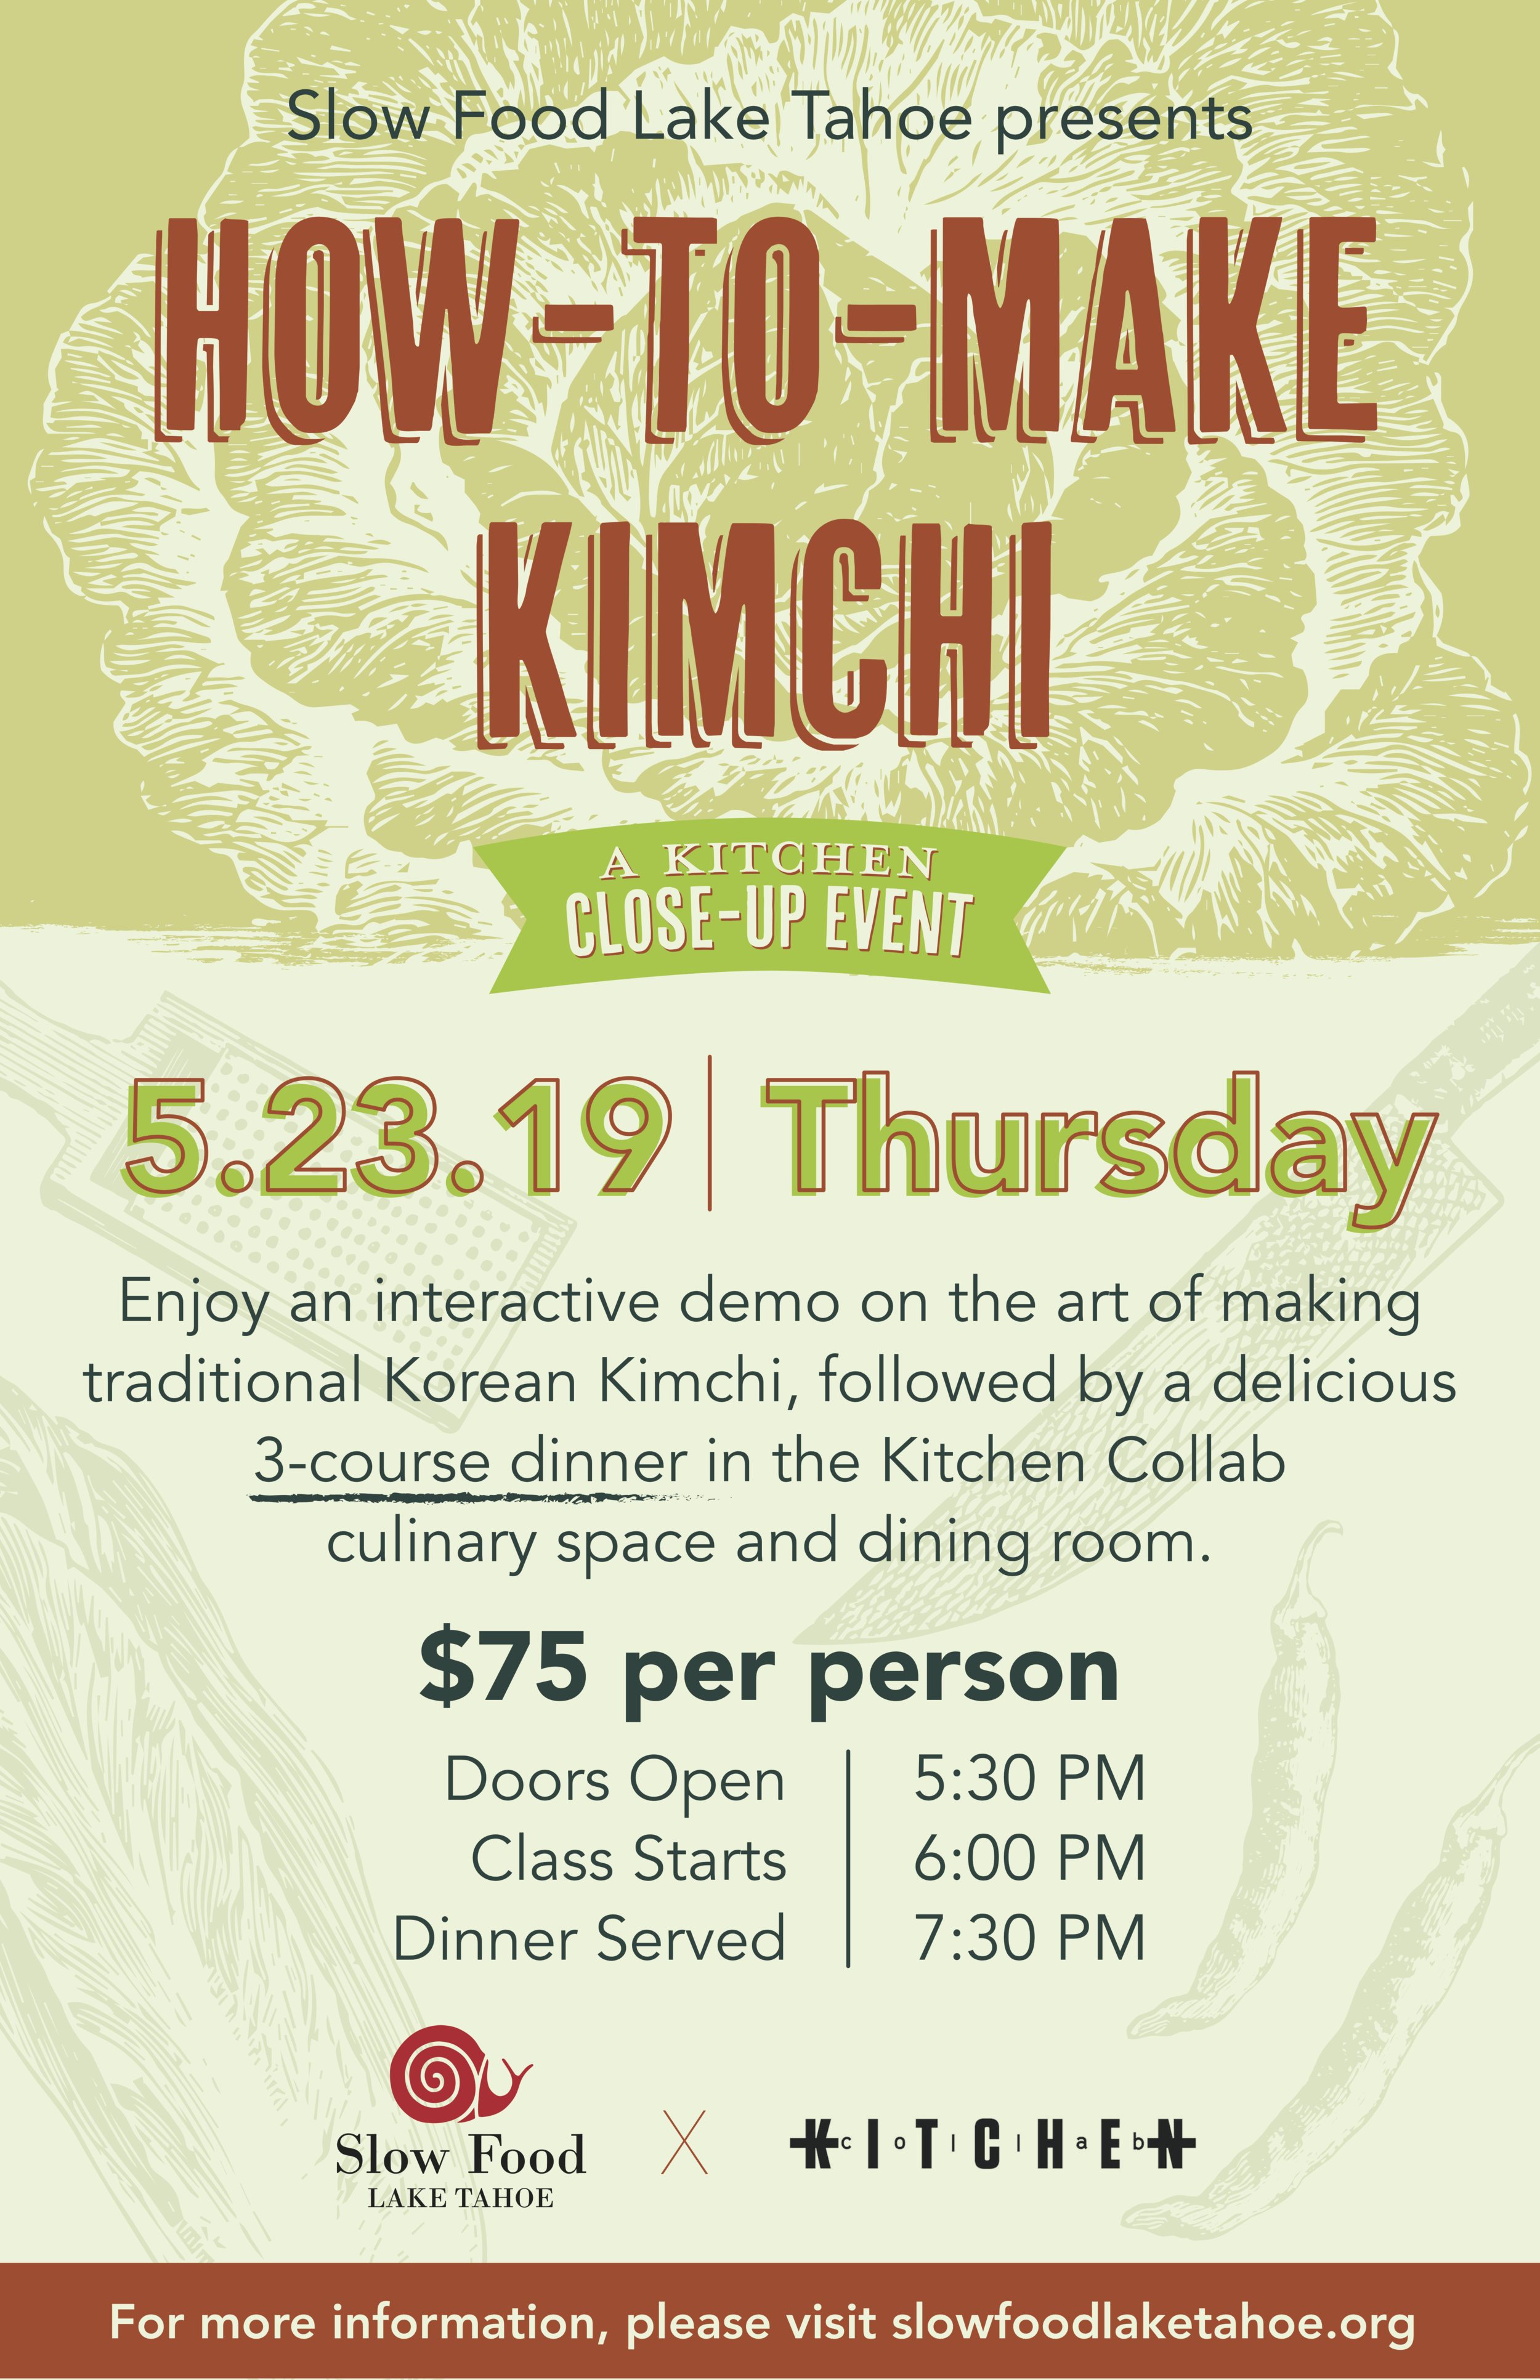 pngKitchen Close Up_Kimchi Poster 11x17 (1).png